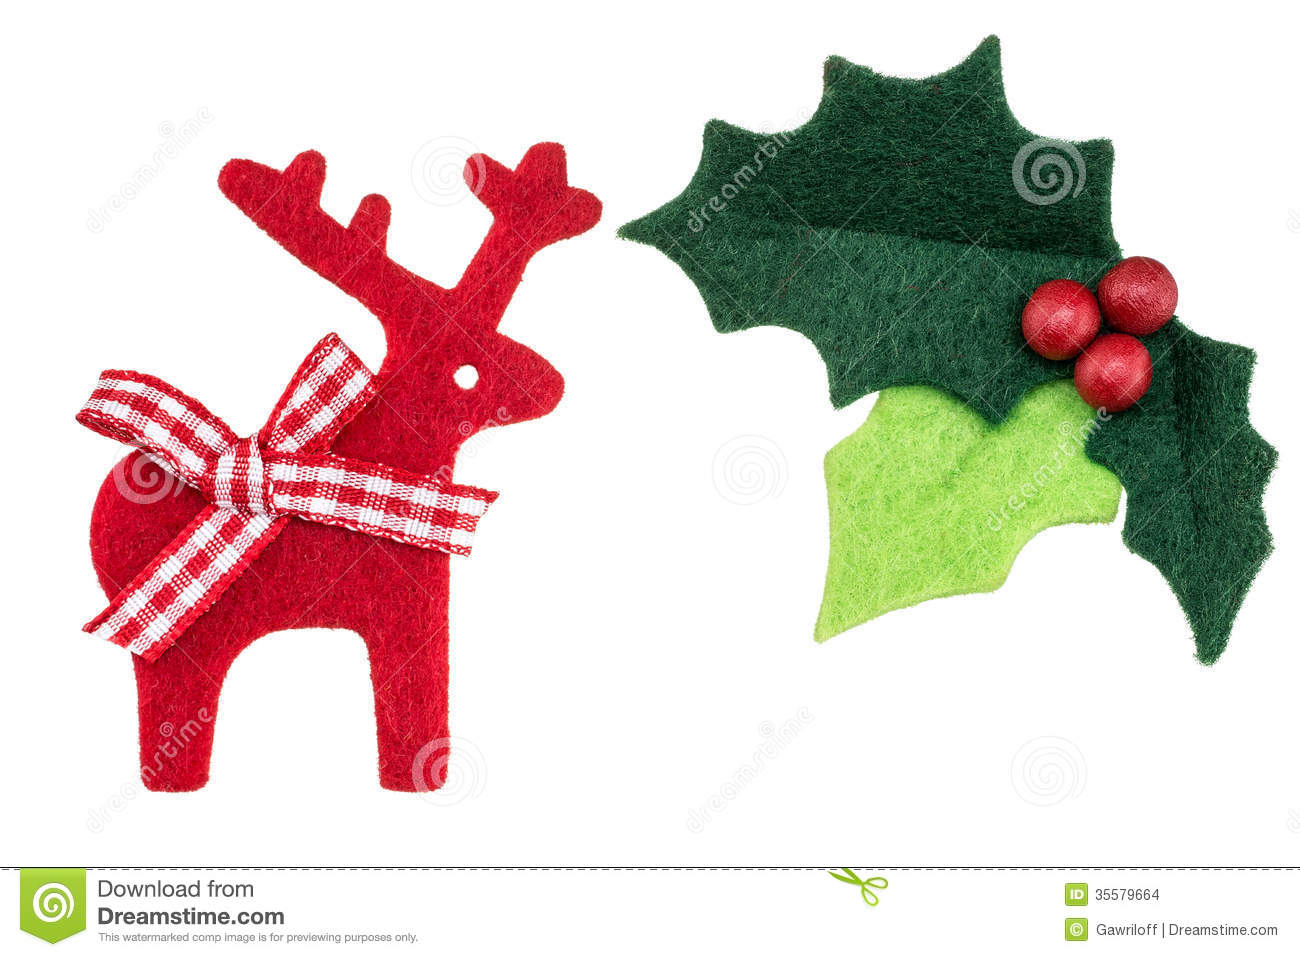 Reindeer isolated as a winter holiday symbol and seasonal decoration